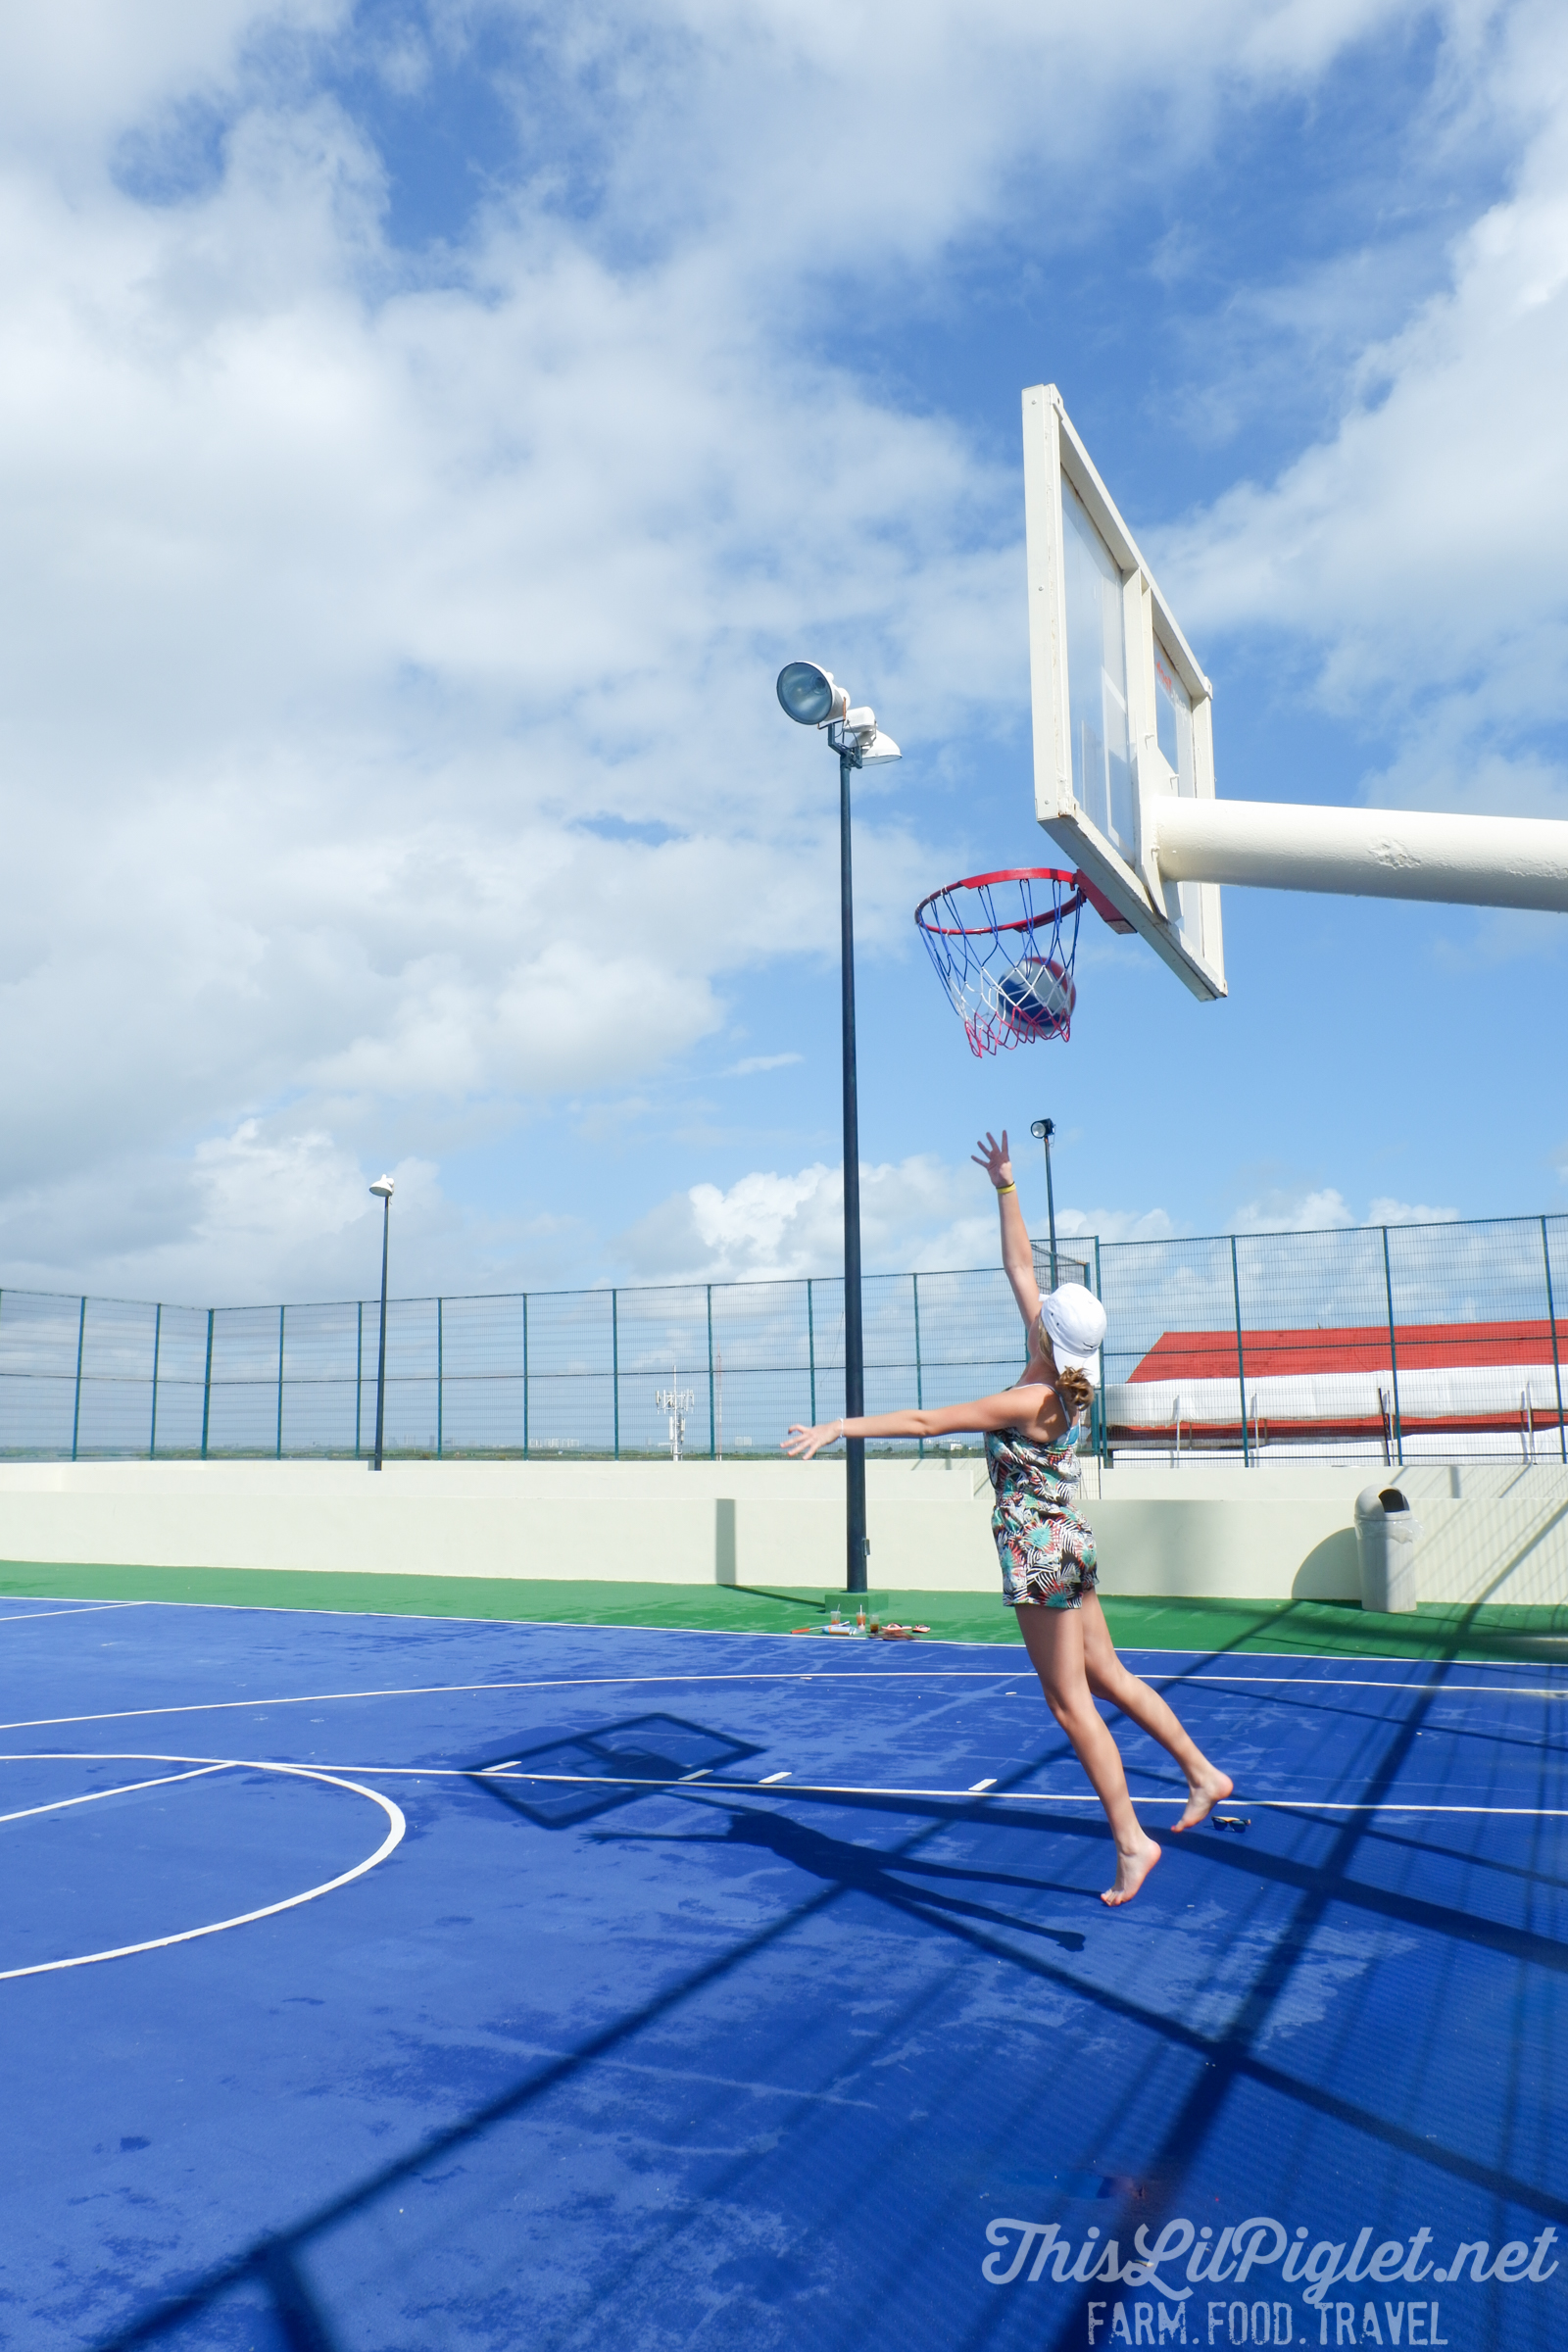 Family Vacations for All Ages at Cancun Paradise Club Resort: Things to Do - Basketball, Soccer; Tennis // thislilpiglet.net